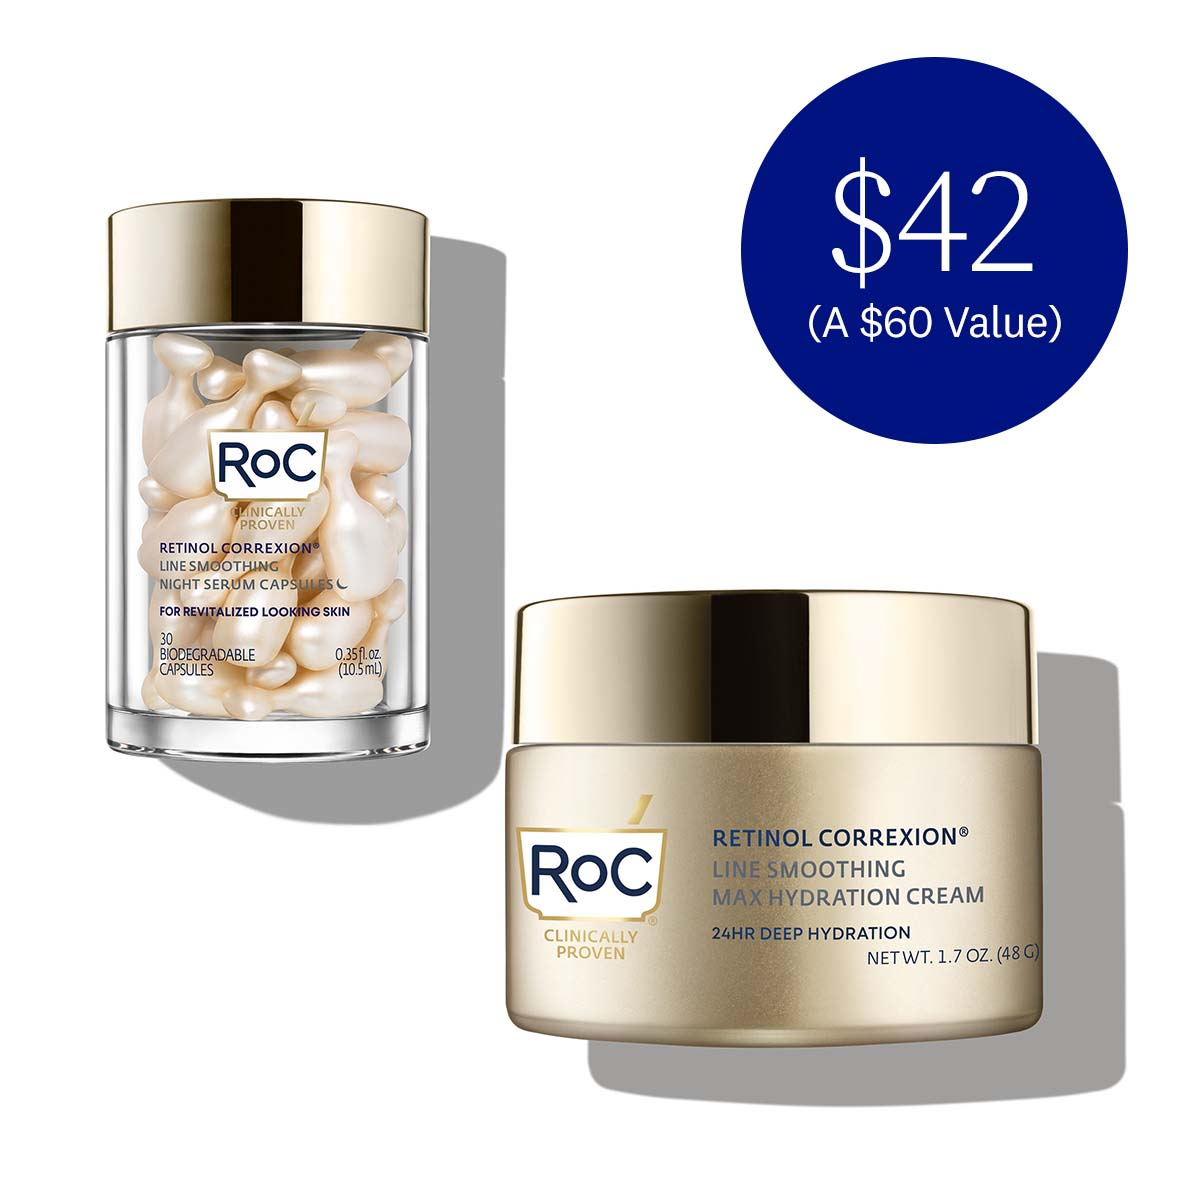 RoC Retinol Correxion Line Smoothing Night Serum Capsules For Revitalized Looking Skin 30 Biodegradable Capsules 0.35 fl oz (10.5ml) and Retinol Correxion Line Smoothing Max Hydrating Cream 24 Hour Deep Hydration Net wt 1.7 oz (48g). $42 (a $60 value)